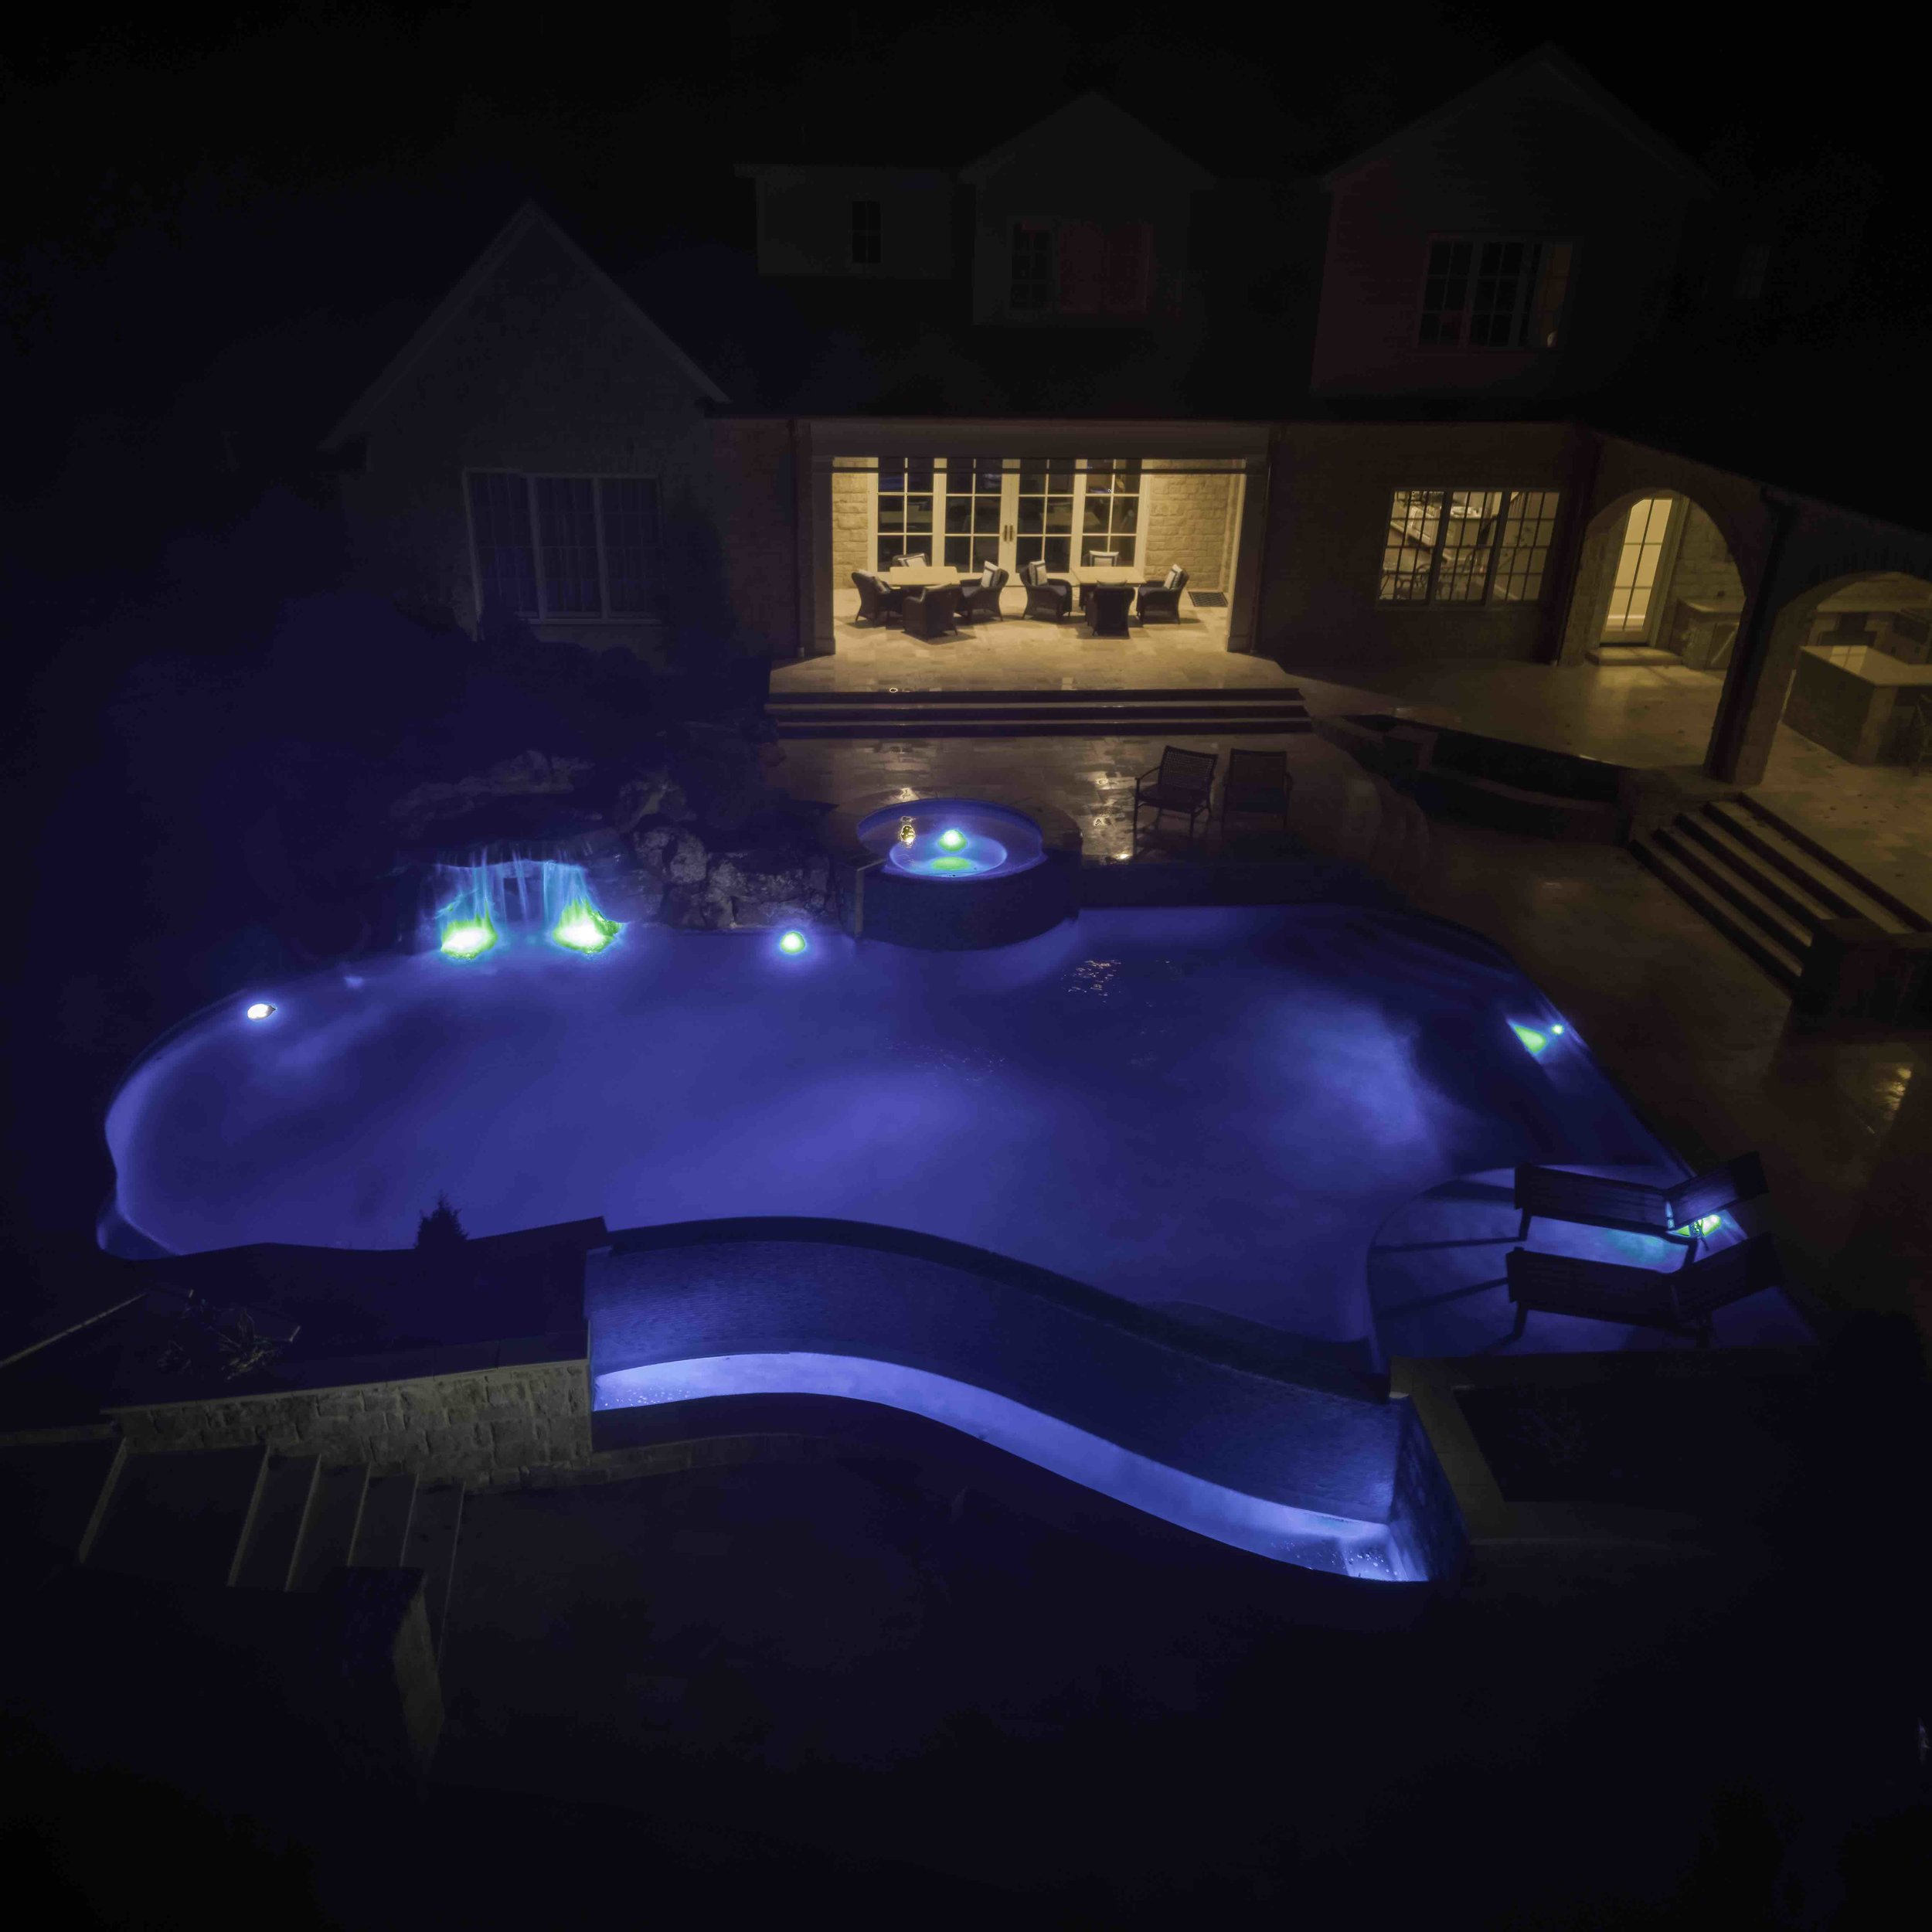 Myers Pool | evening | color | ANDREW G | 1x1 | Print Ready - 29.jpg